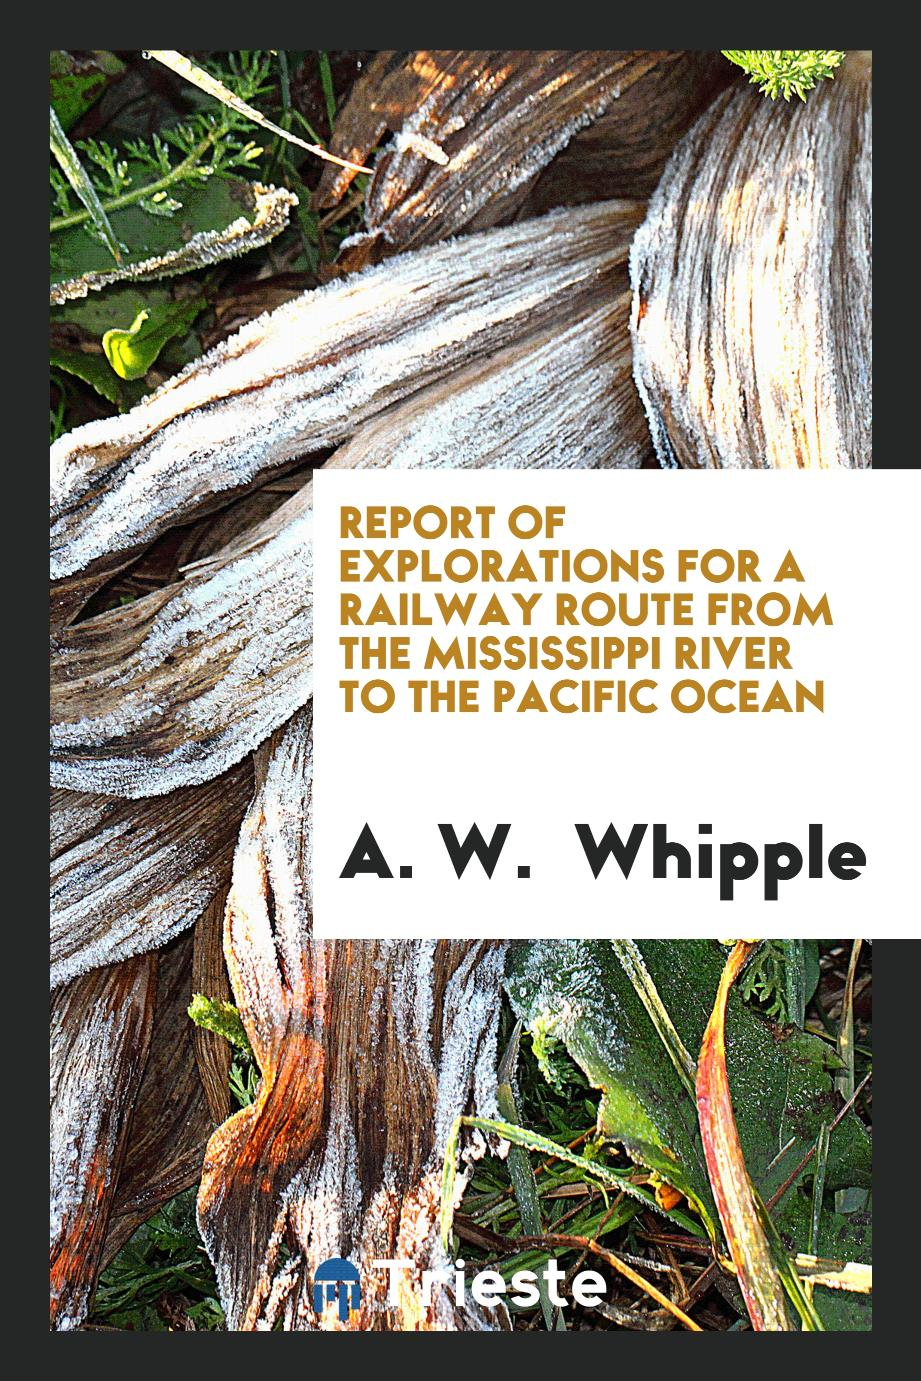 Report of Explorations for a railway route from the Mississippi river to the Pacific Ocean